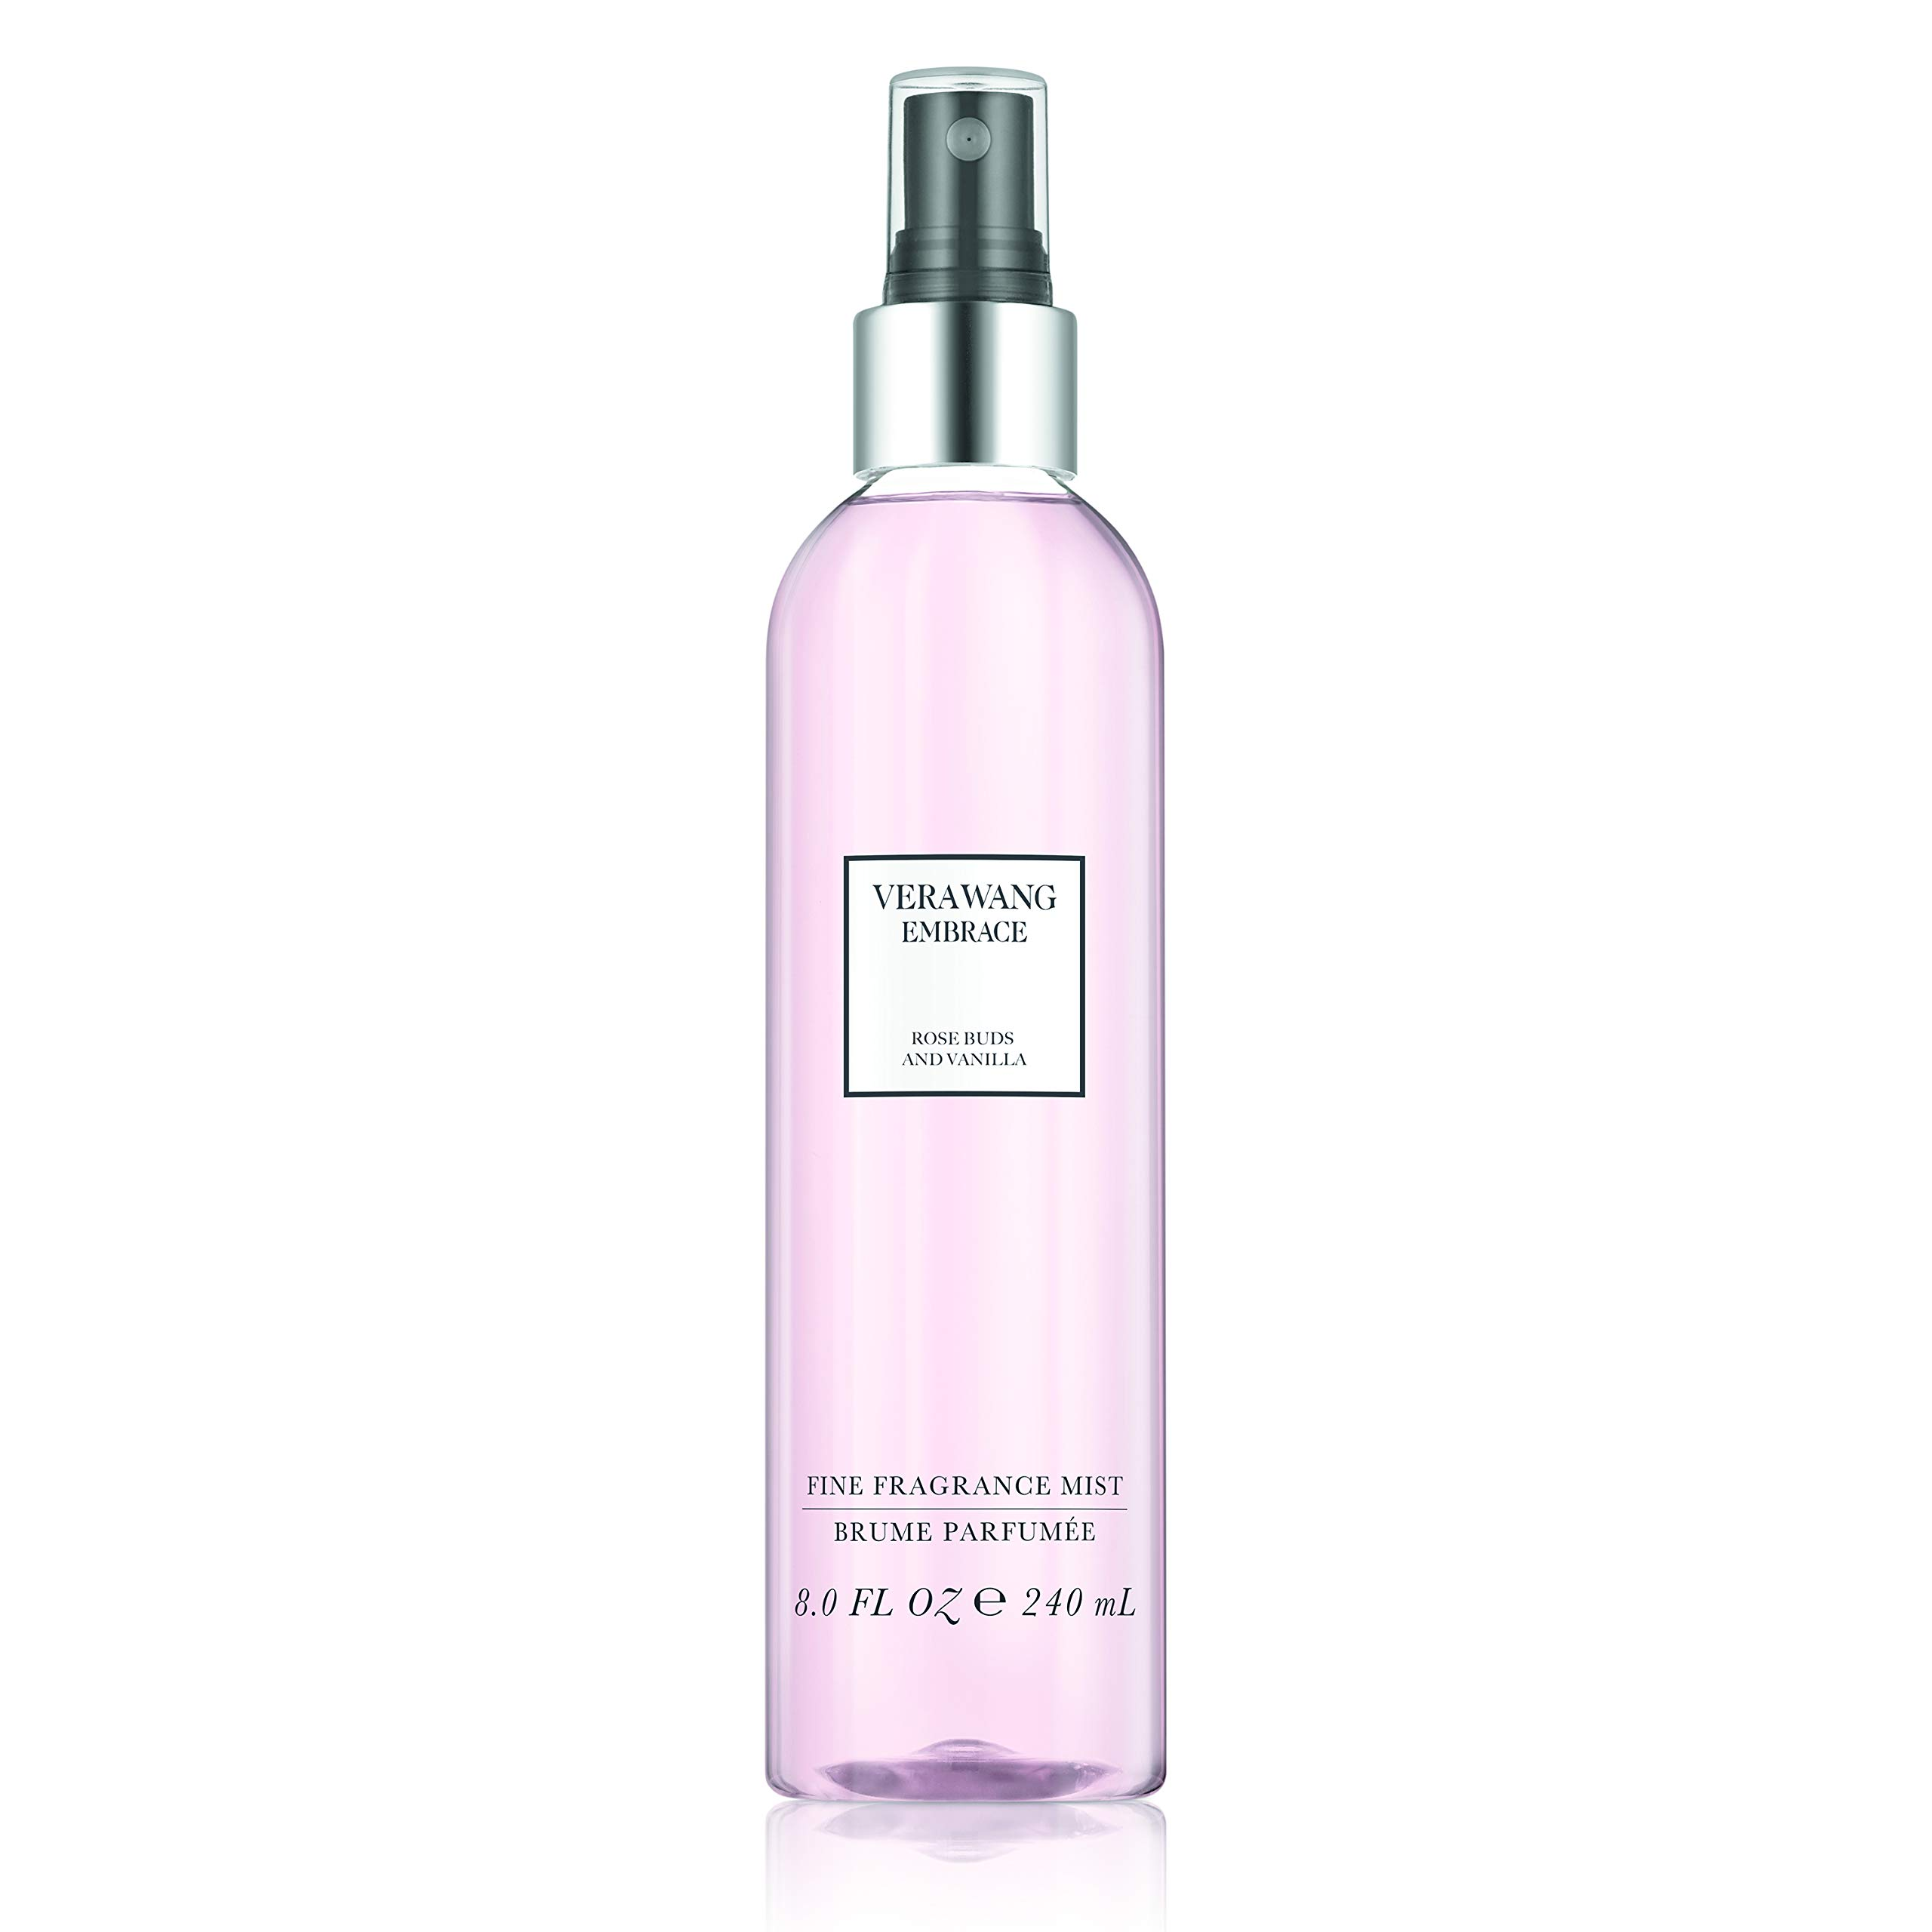 6a7775f3eb Vera Wang Embrace Body Mist for Women Rose Buds and Vanilla Scent 8 Fluid  Oz.